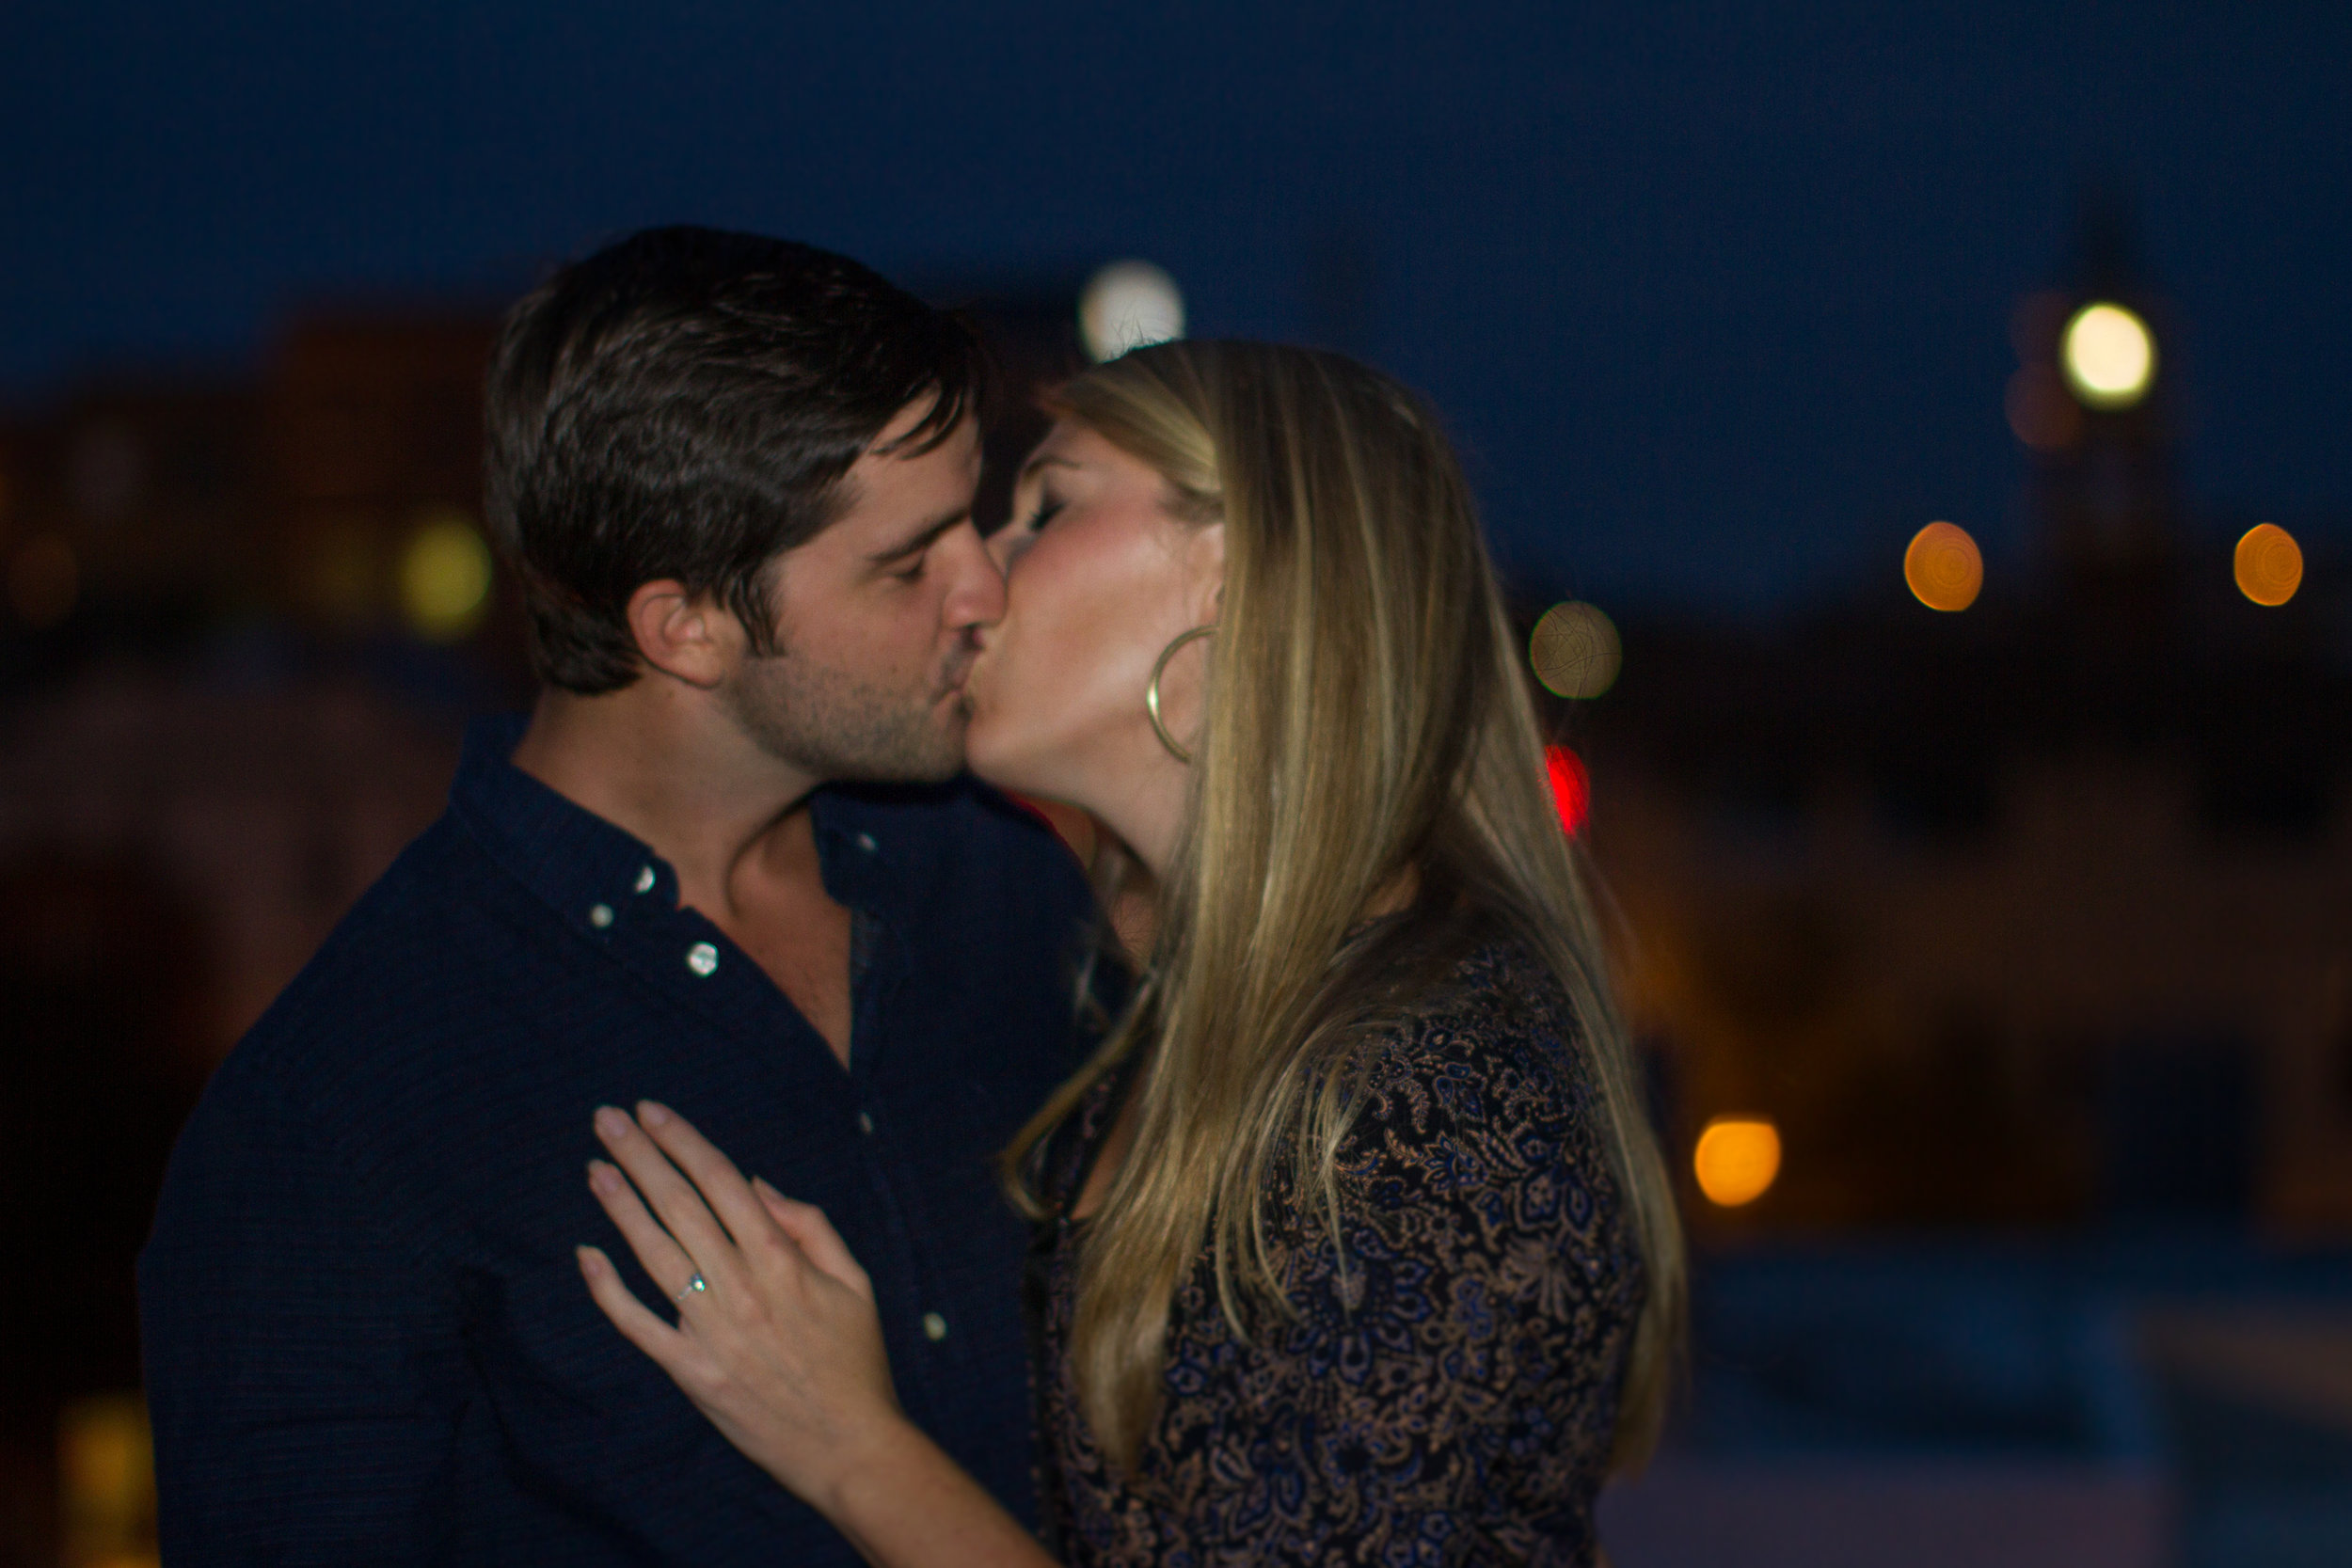 Nataleigh and Michael Engagement Edited (6 of 6).jpg